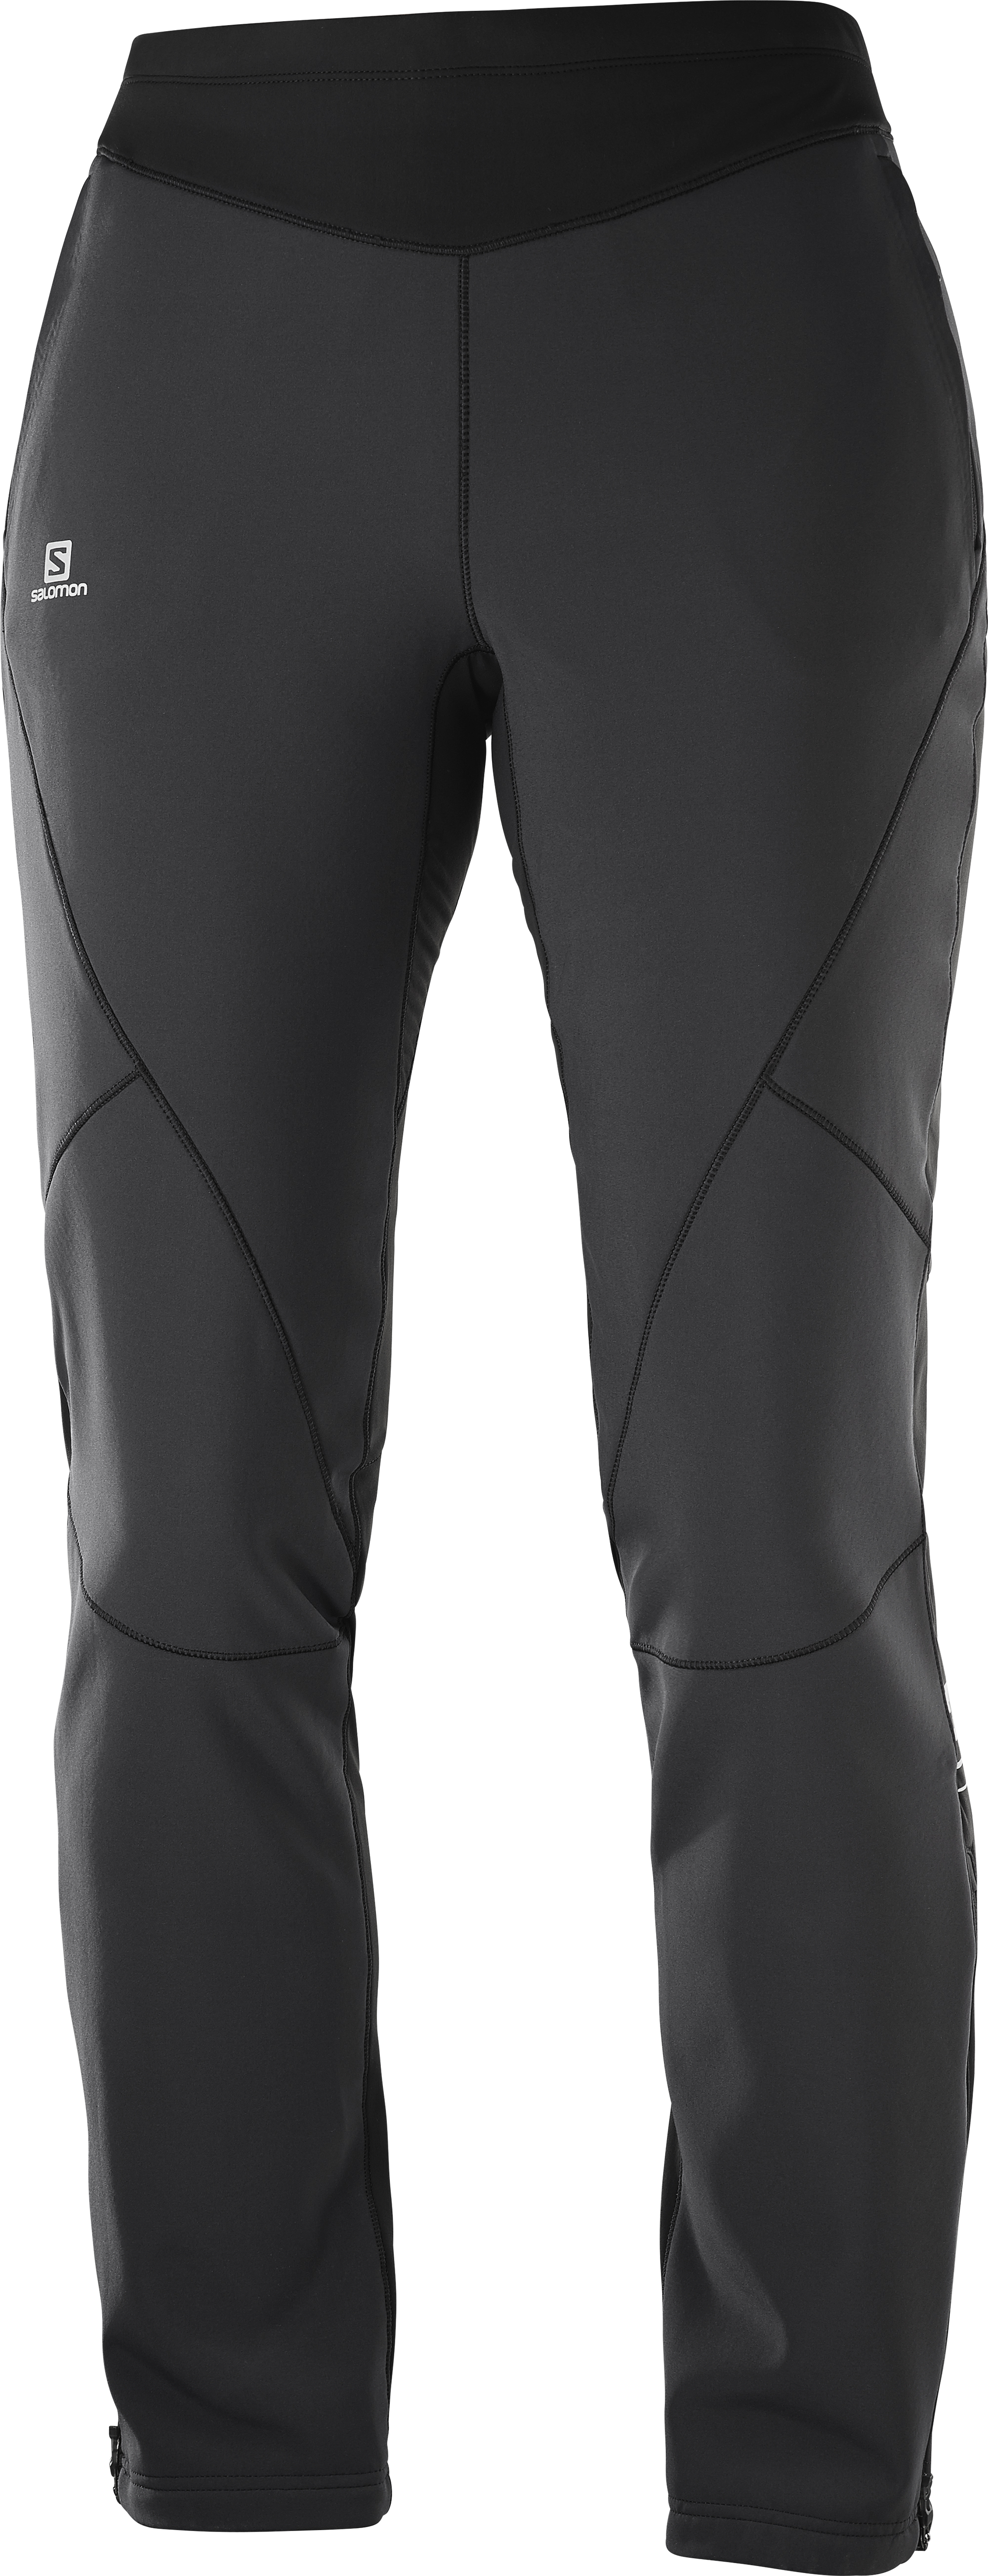 Штаны для беговых лыж SALOMON Lightning Warm SShell Pant W Black (19/20)